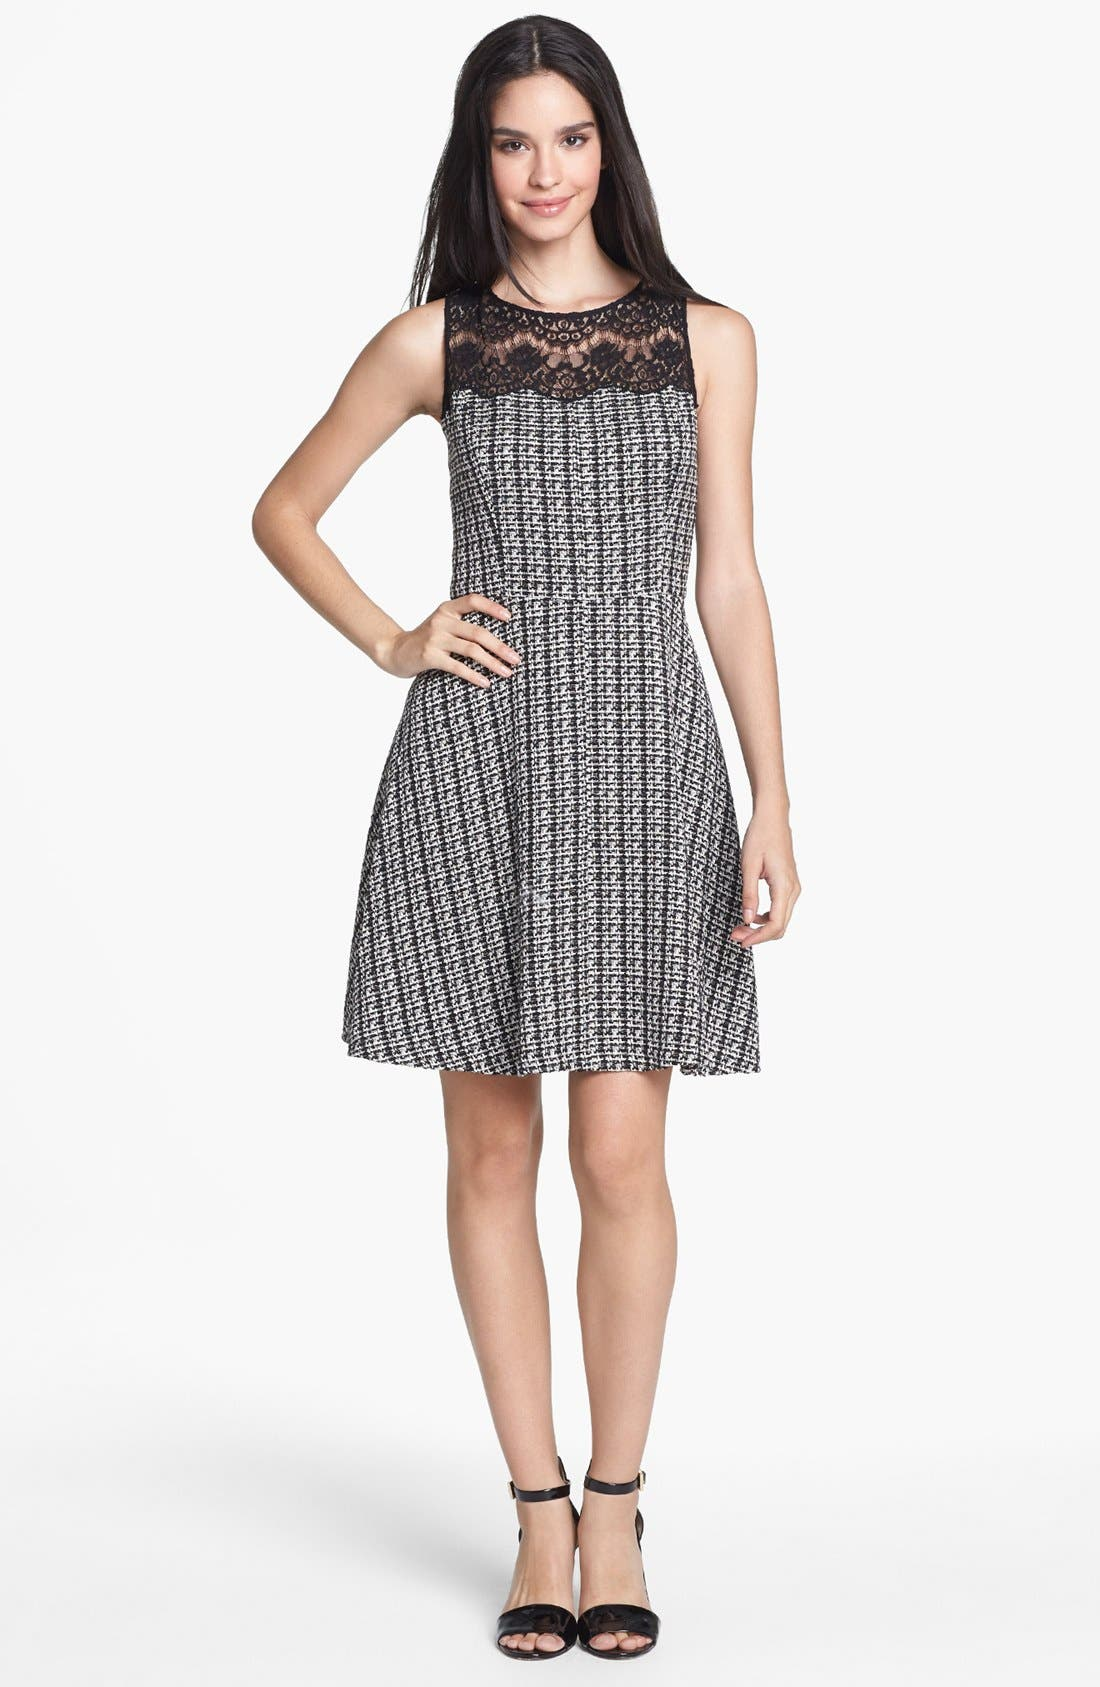 Main Image - Jessica Simpson Lace Yoke Bouclé Fit & Flare Dress